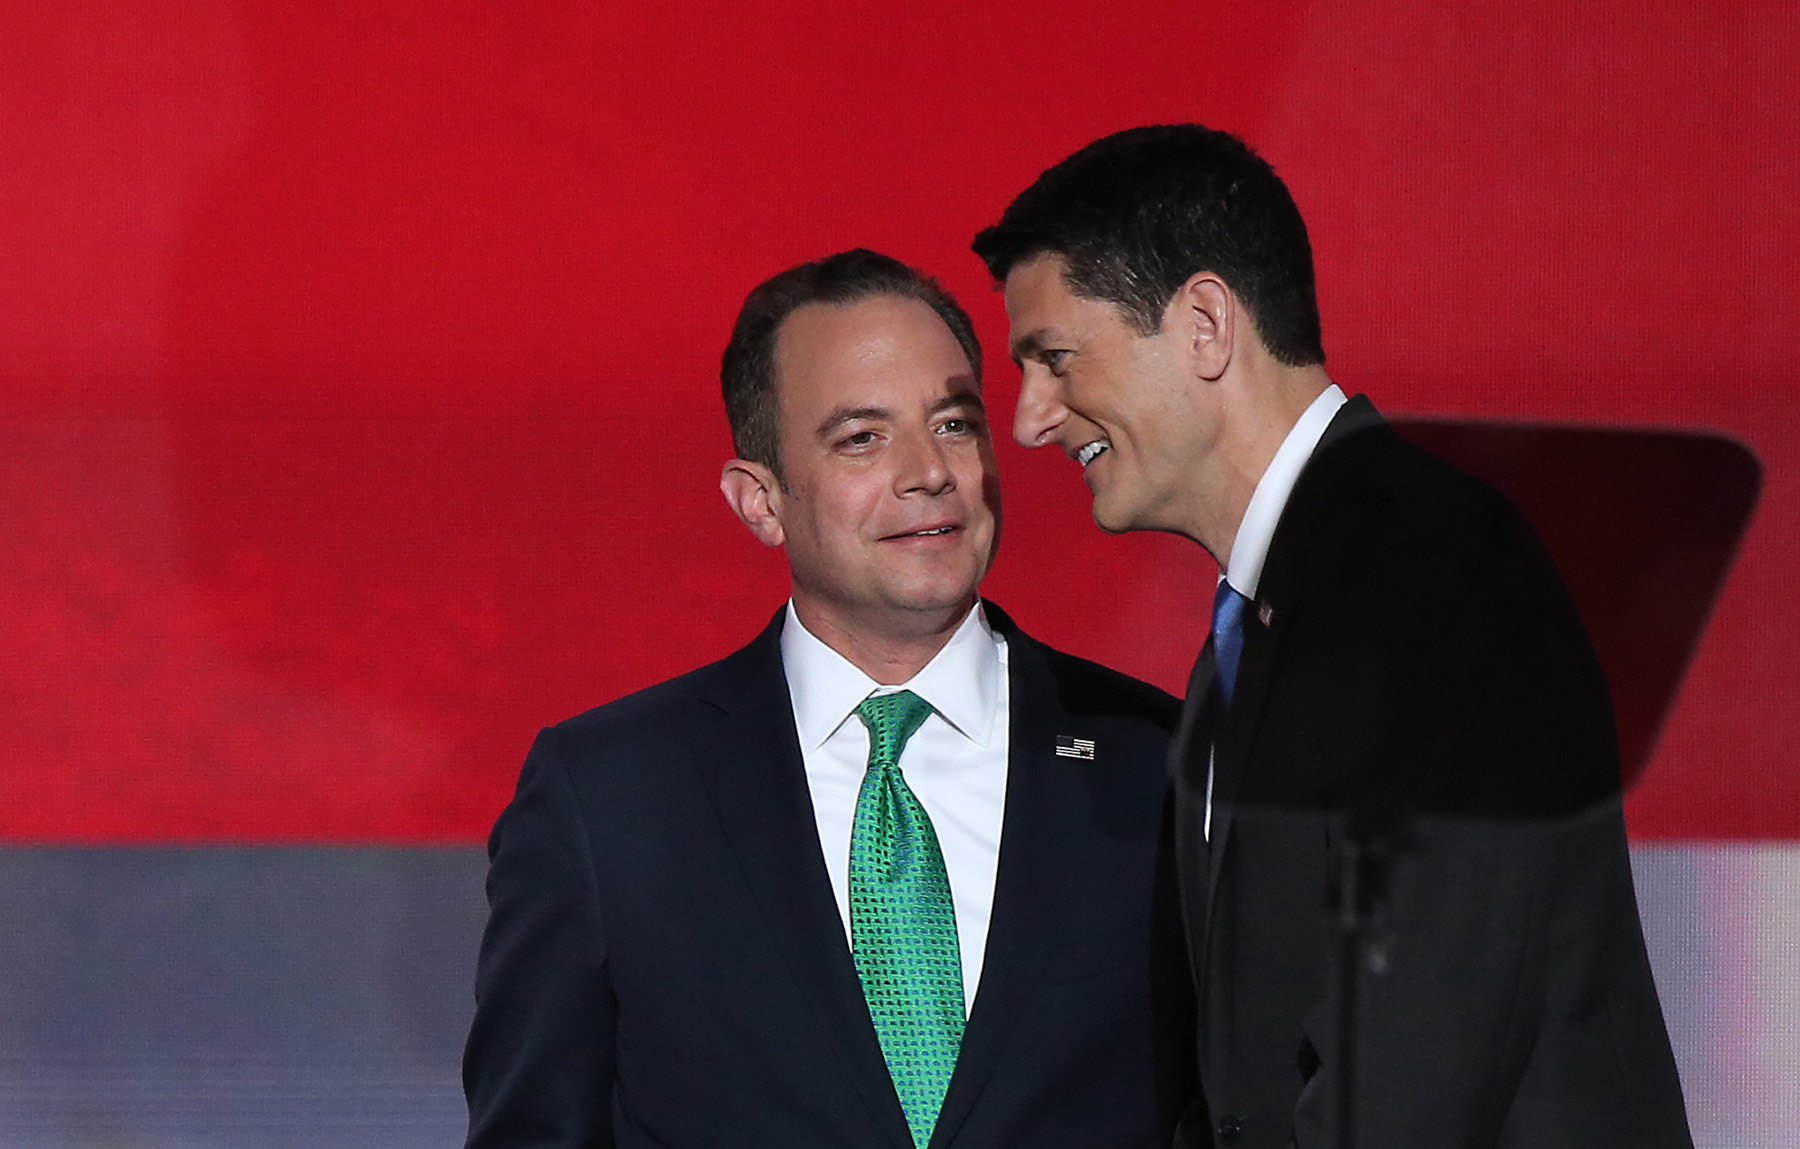 Reince Priebus, left, and Paul Ryan